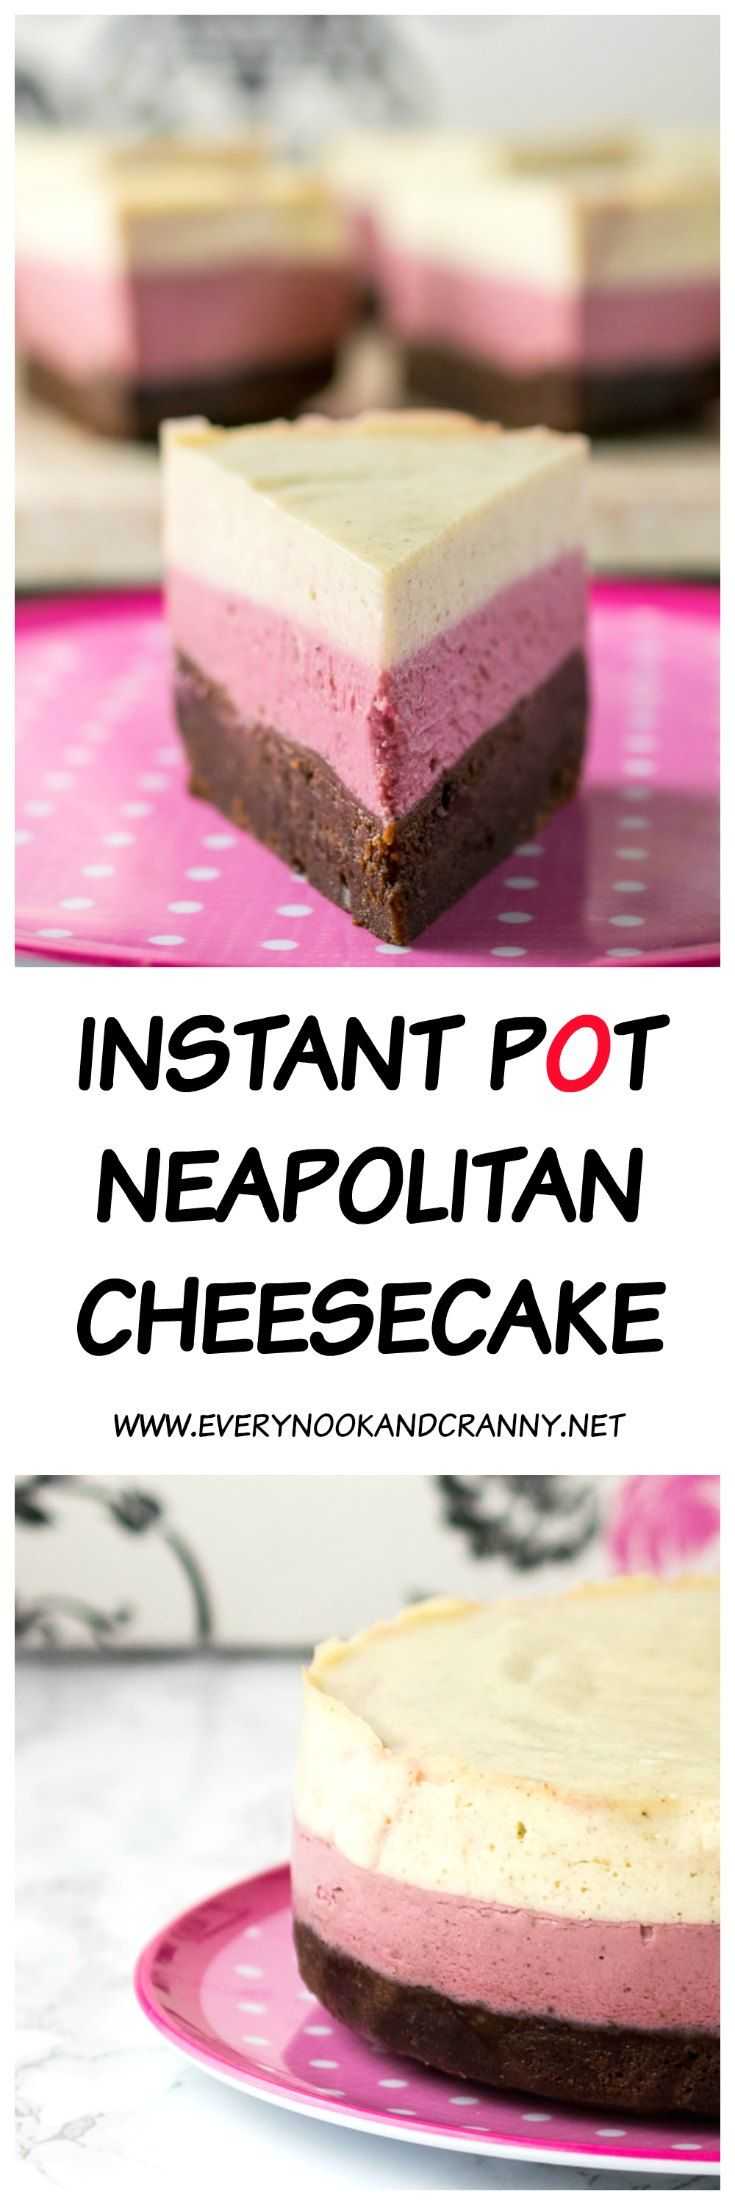 Instant Pot Neapolitan Cheesecake - layers of vanilla and strawberry cheesecake on top of a chocolate brownie base, cooked in the pressure cooker!